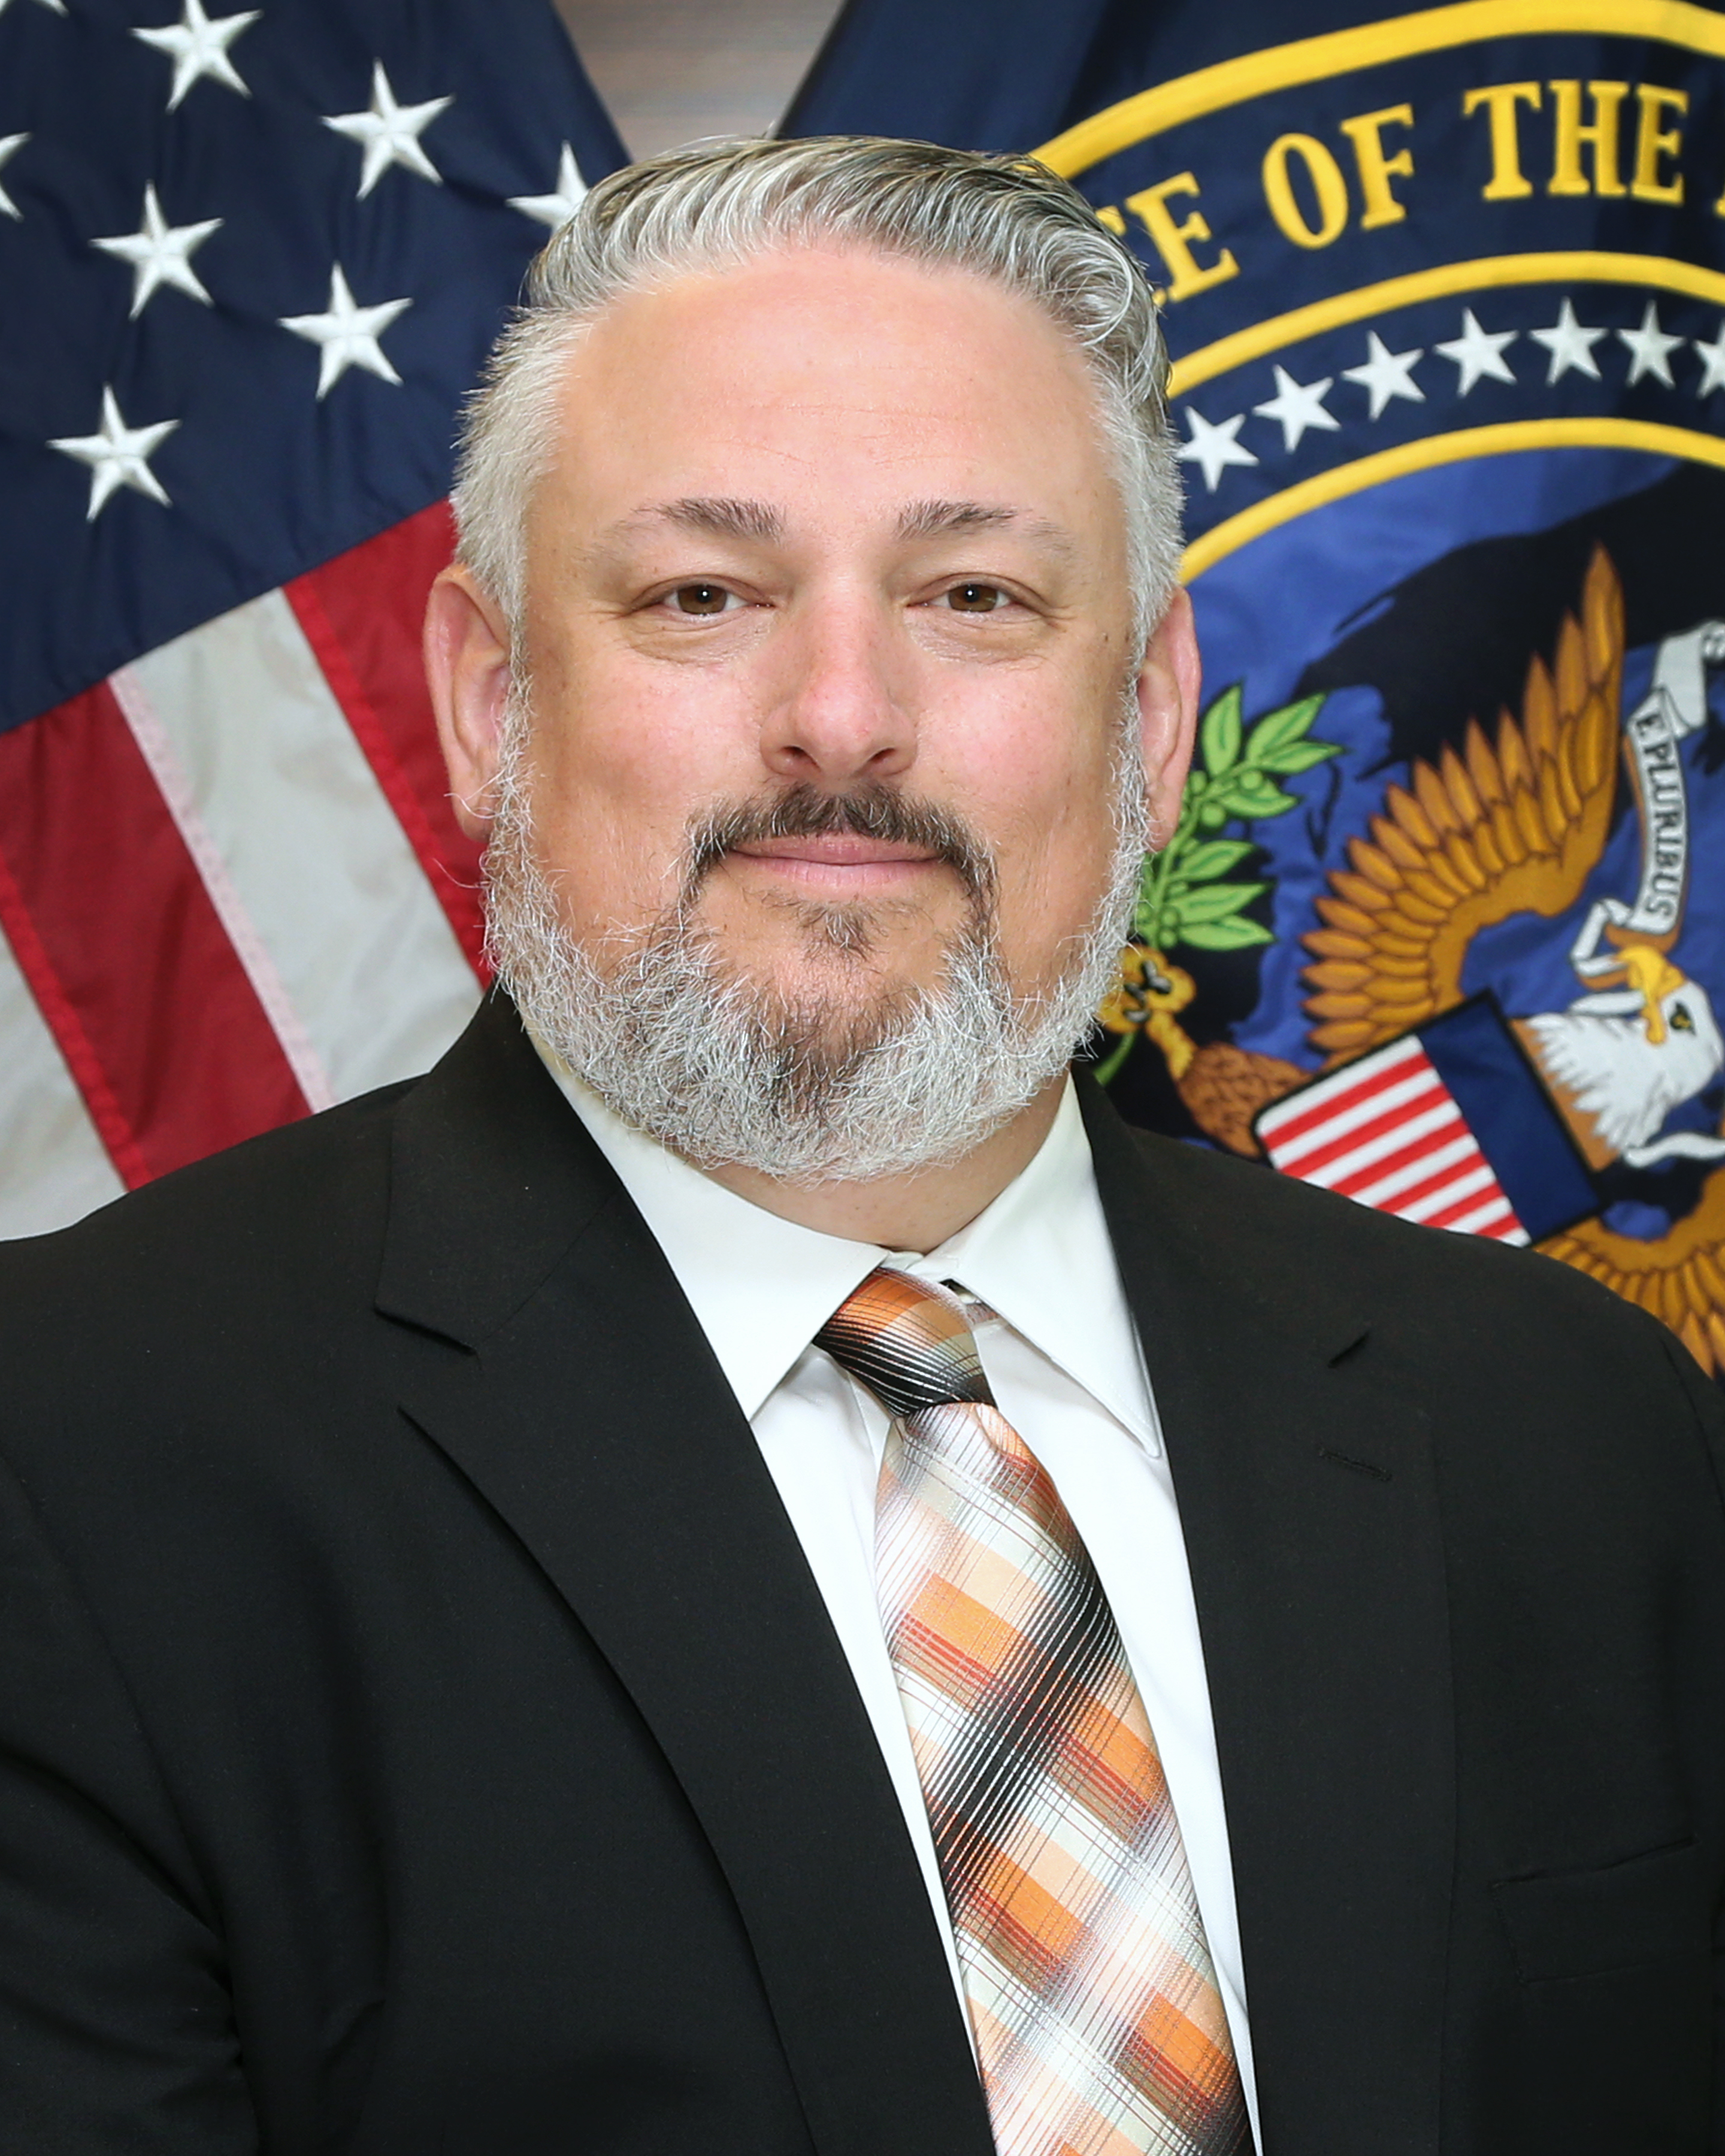 Rob Rahmer official photo